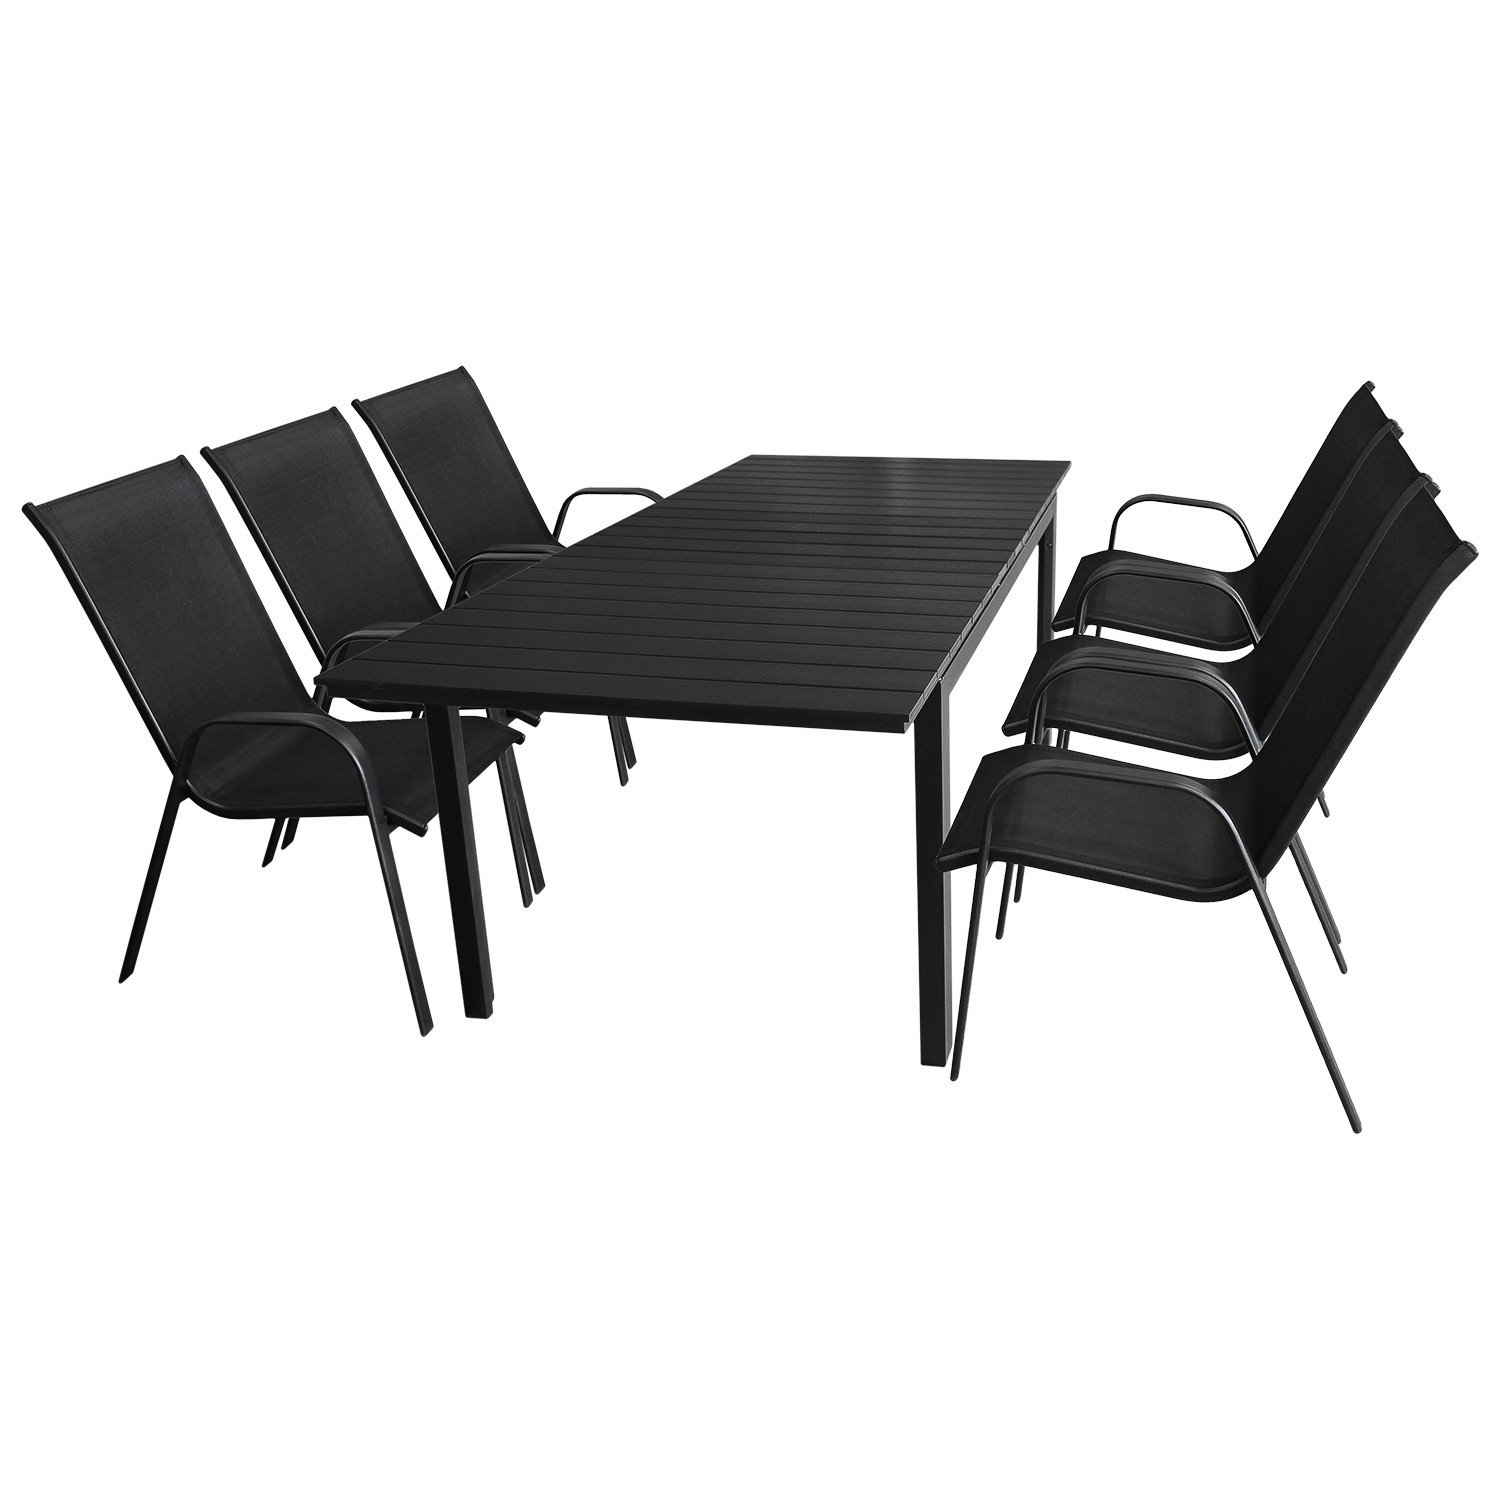 7tlg gartenm bel set aluminium ausziehtisch 160 210x95cm polywood tischplatte 6x. Black Bedroom Furniture Sets. Home Design Ideas